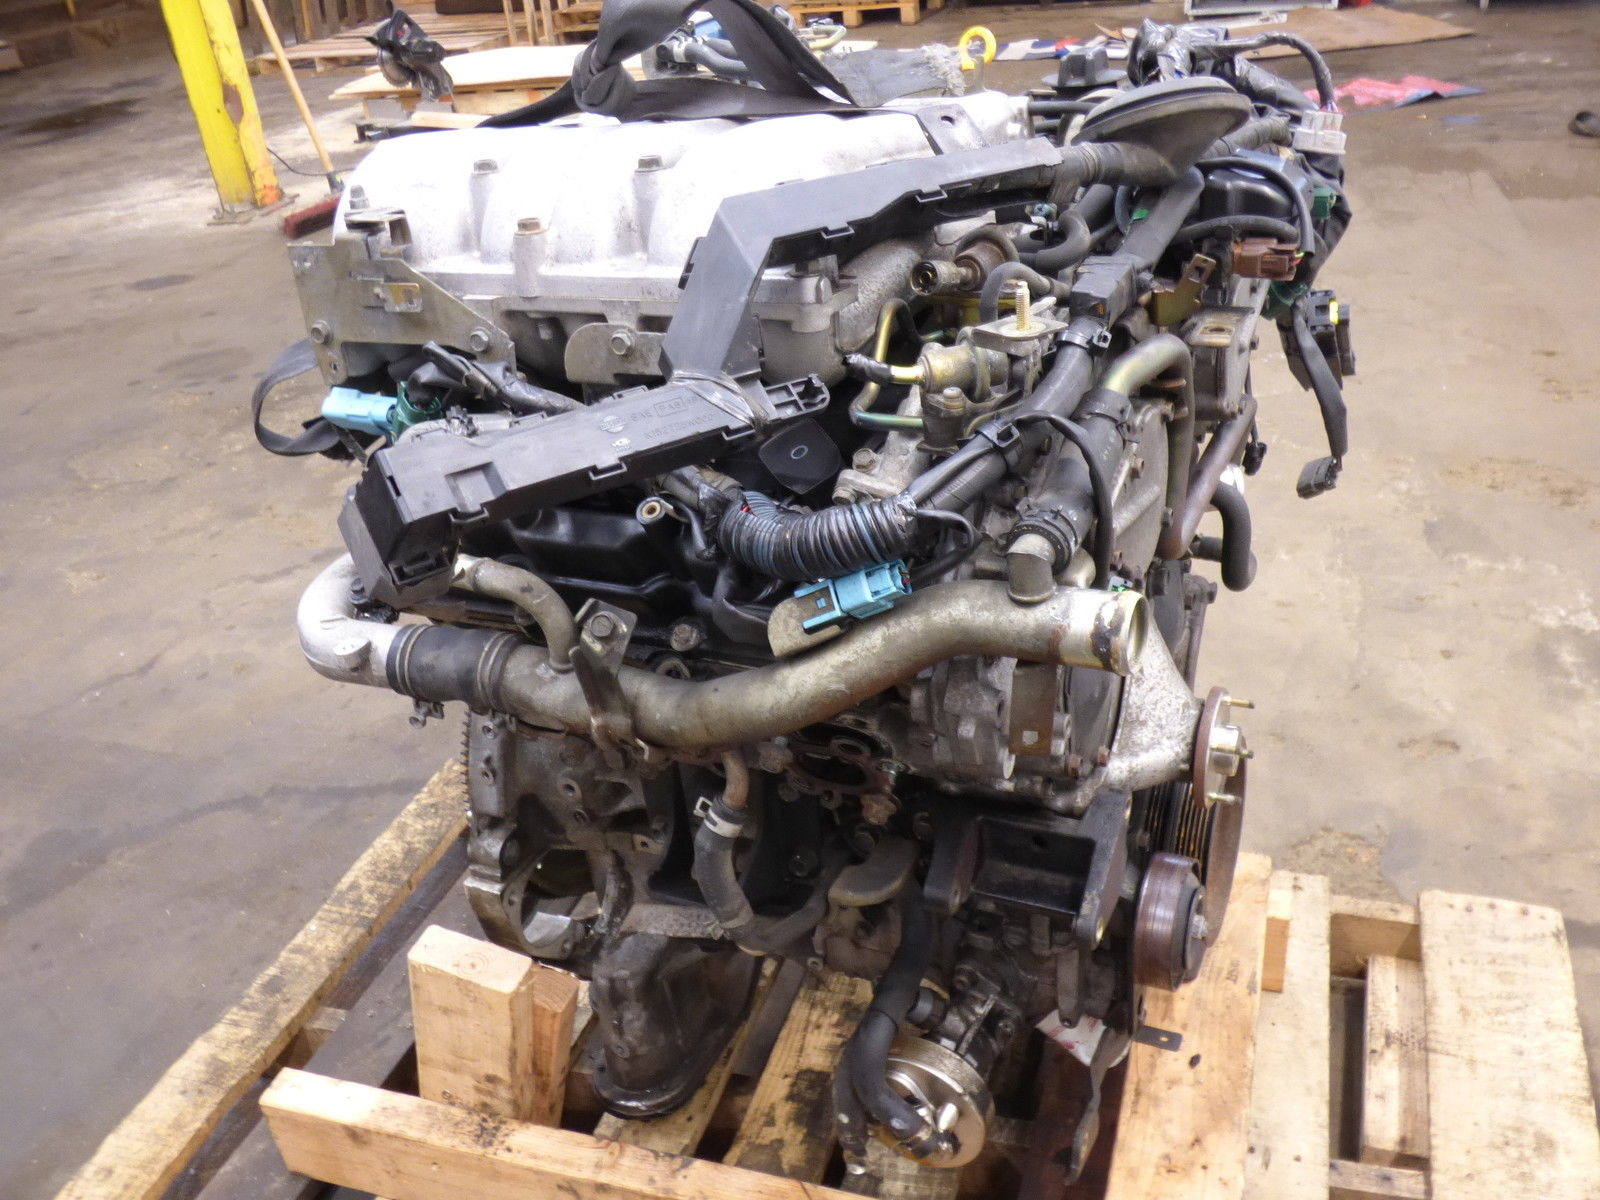 Vq35de Motor Pathfinder 3 5l Engine Diagram Nissan Complete De Day 1600x1200